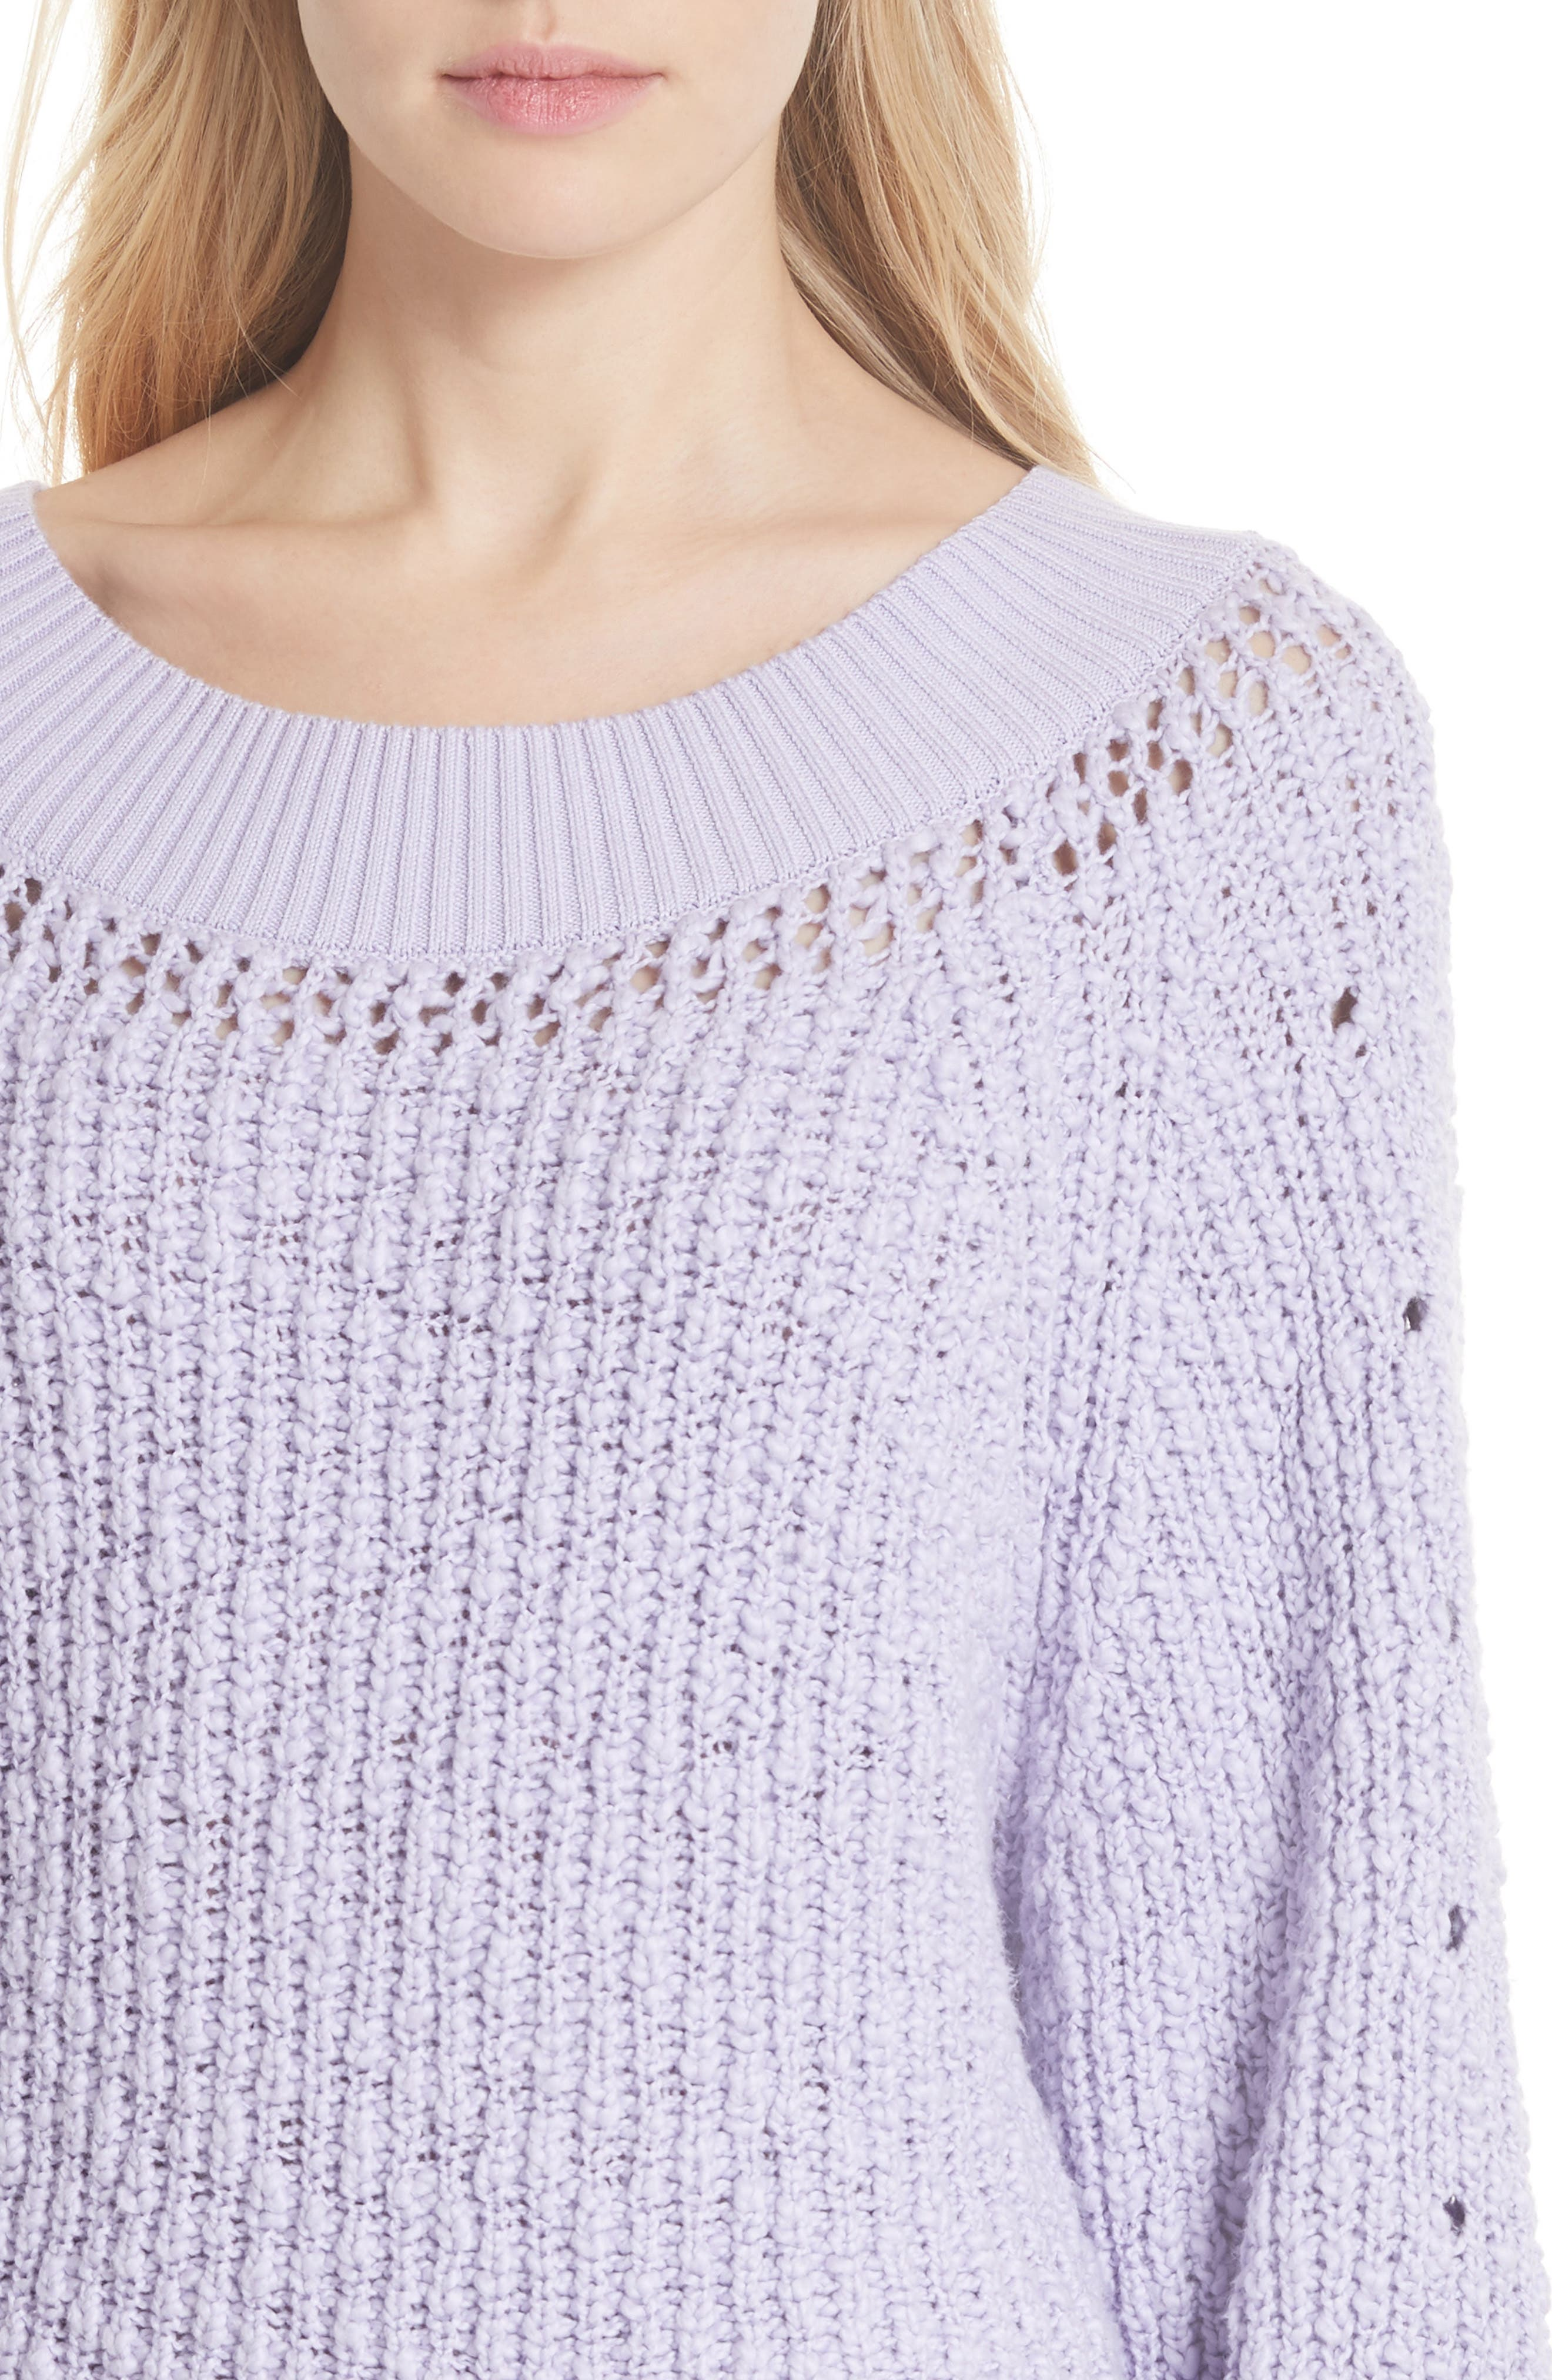 Pandora's Boatneck Sweater,                             Alternate thumbnail 15, color,